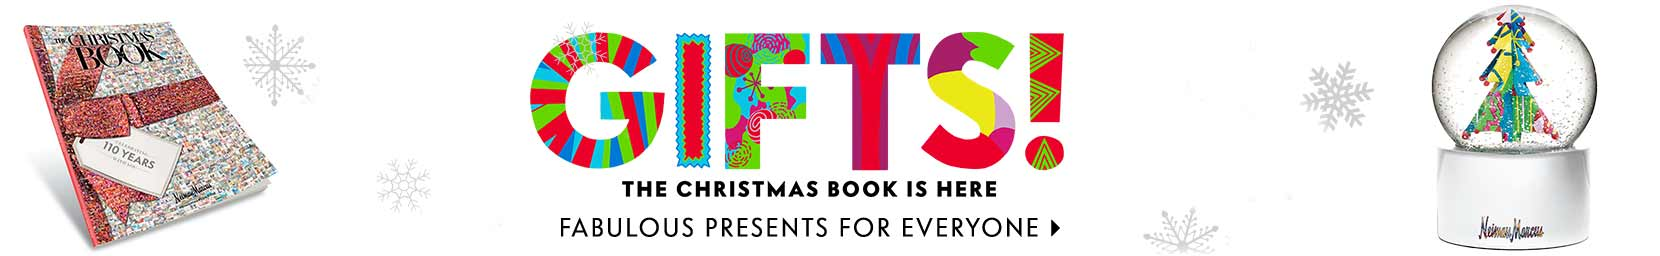 The 2017 Christmas Book is here! Fabulous presents for everyone